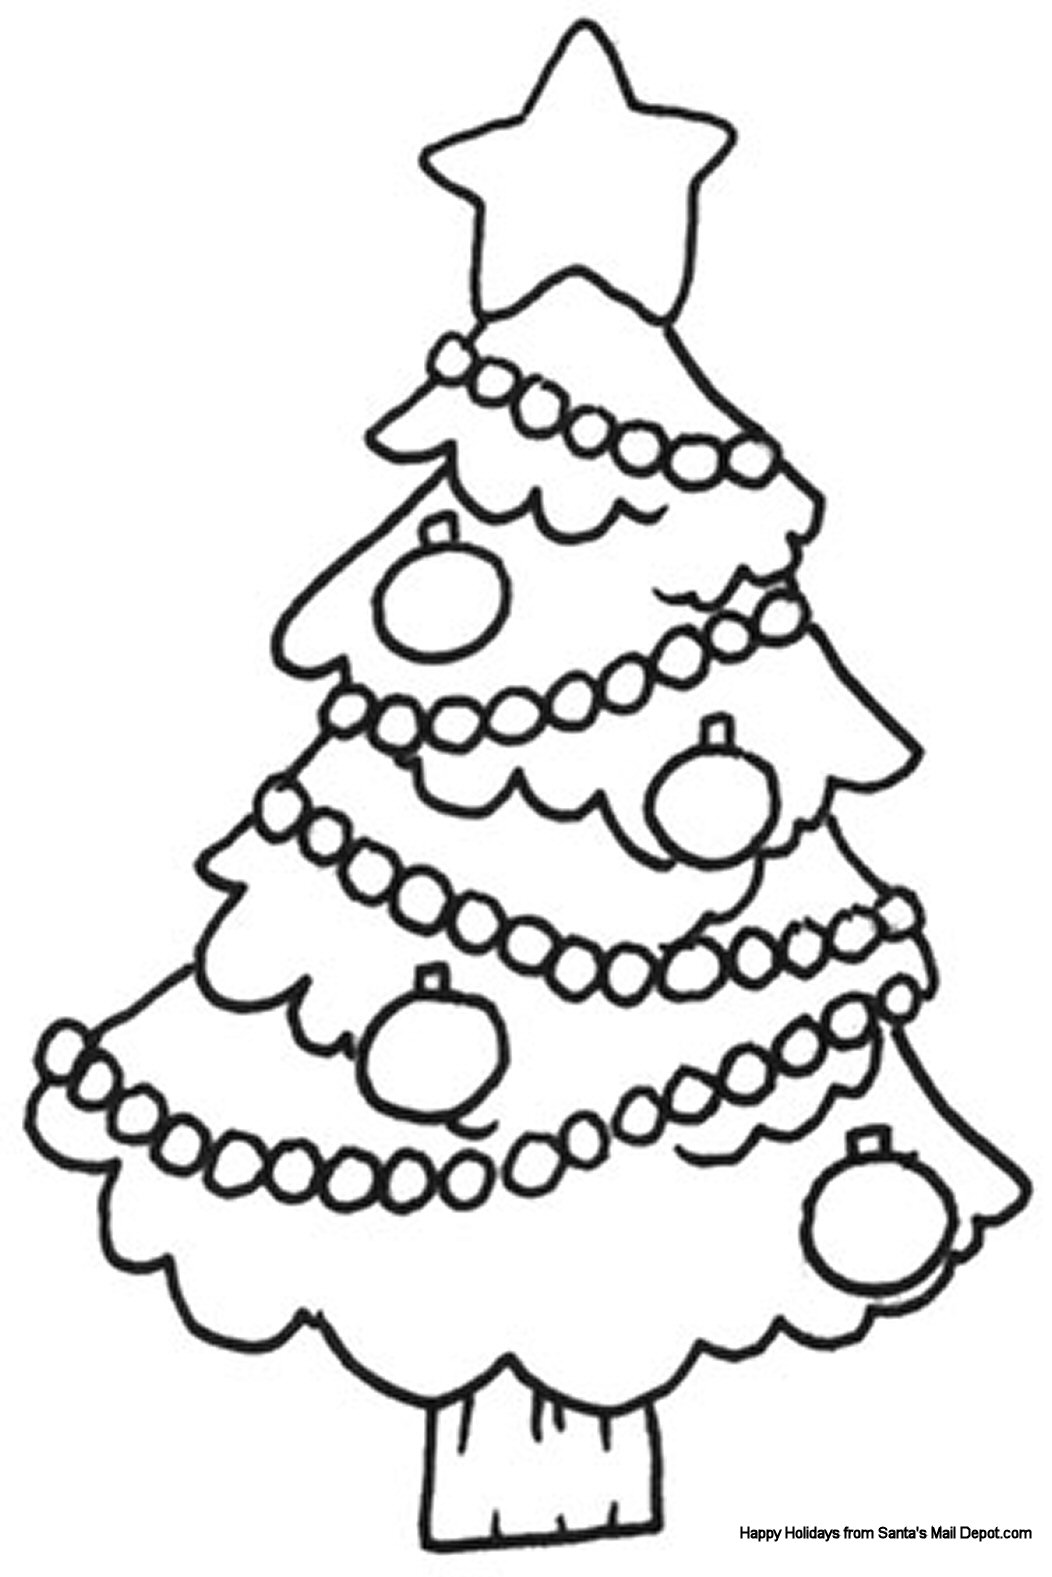 Christmas Pictures Coloring Pages at GetDrawings.com | Free ...